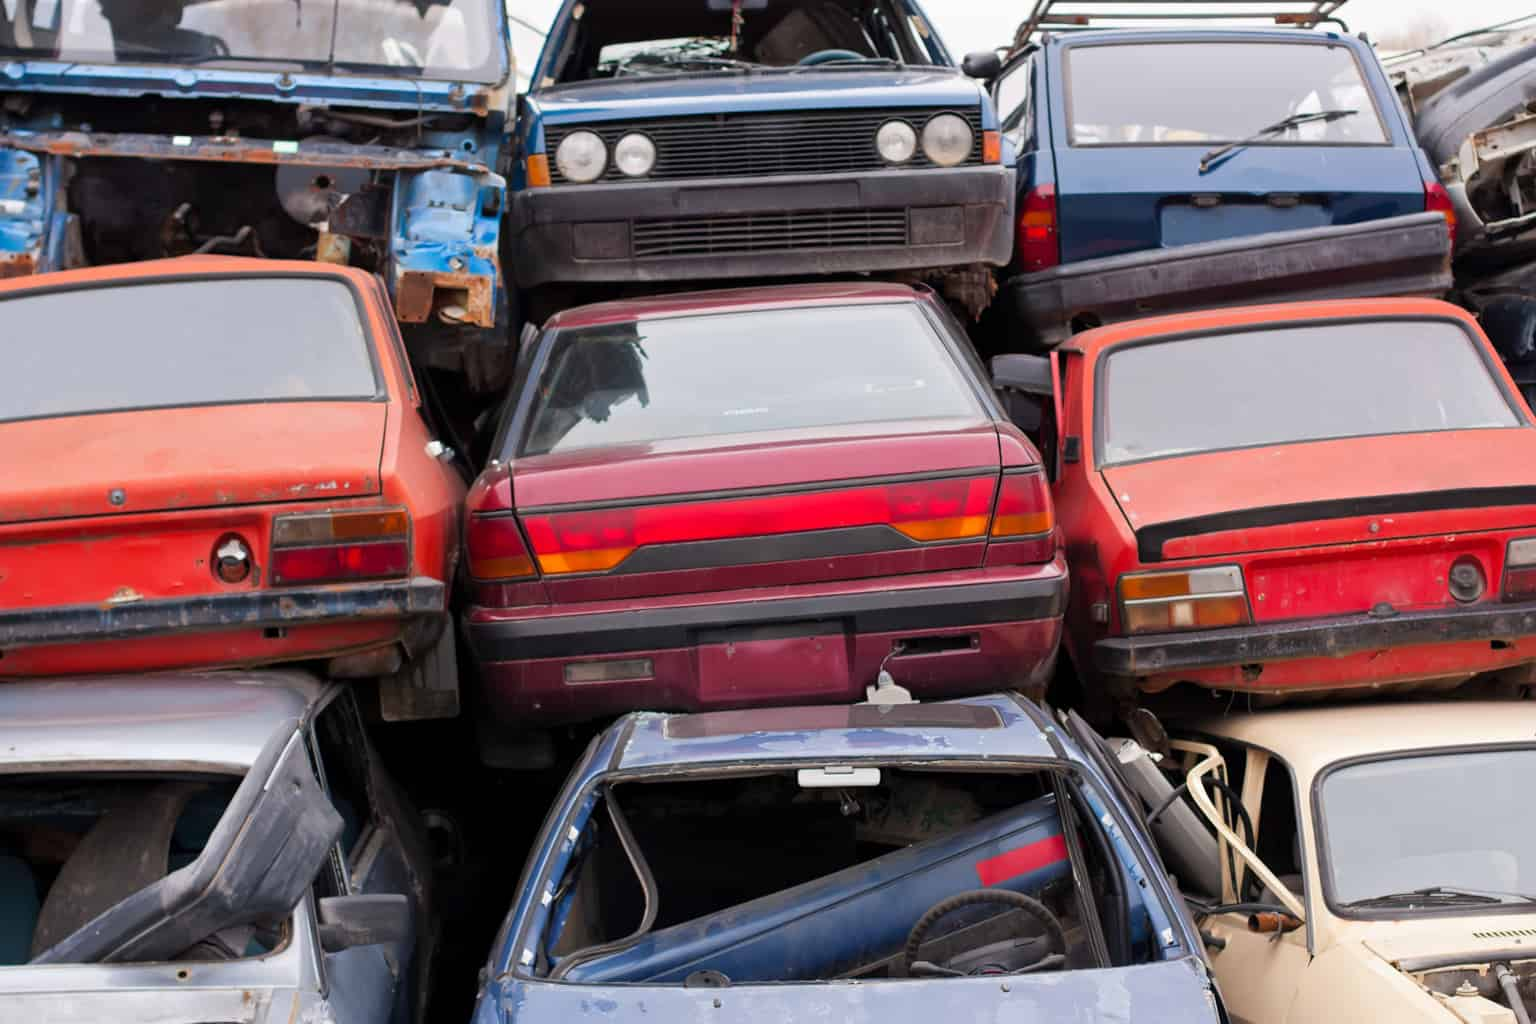 How to Junk a Car: What to Do Before Scrapping Your Car (10 Steps)